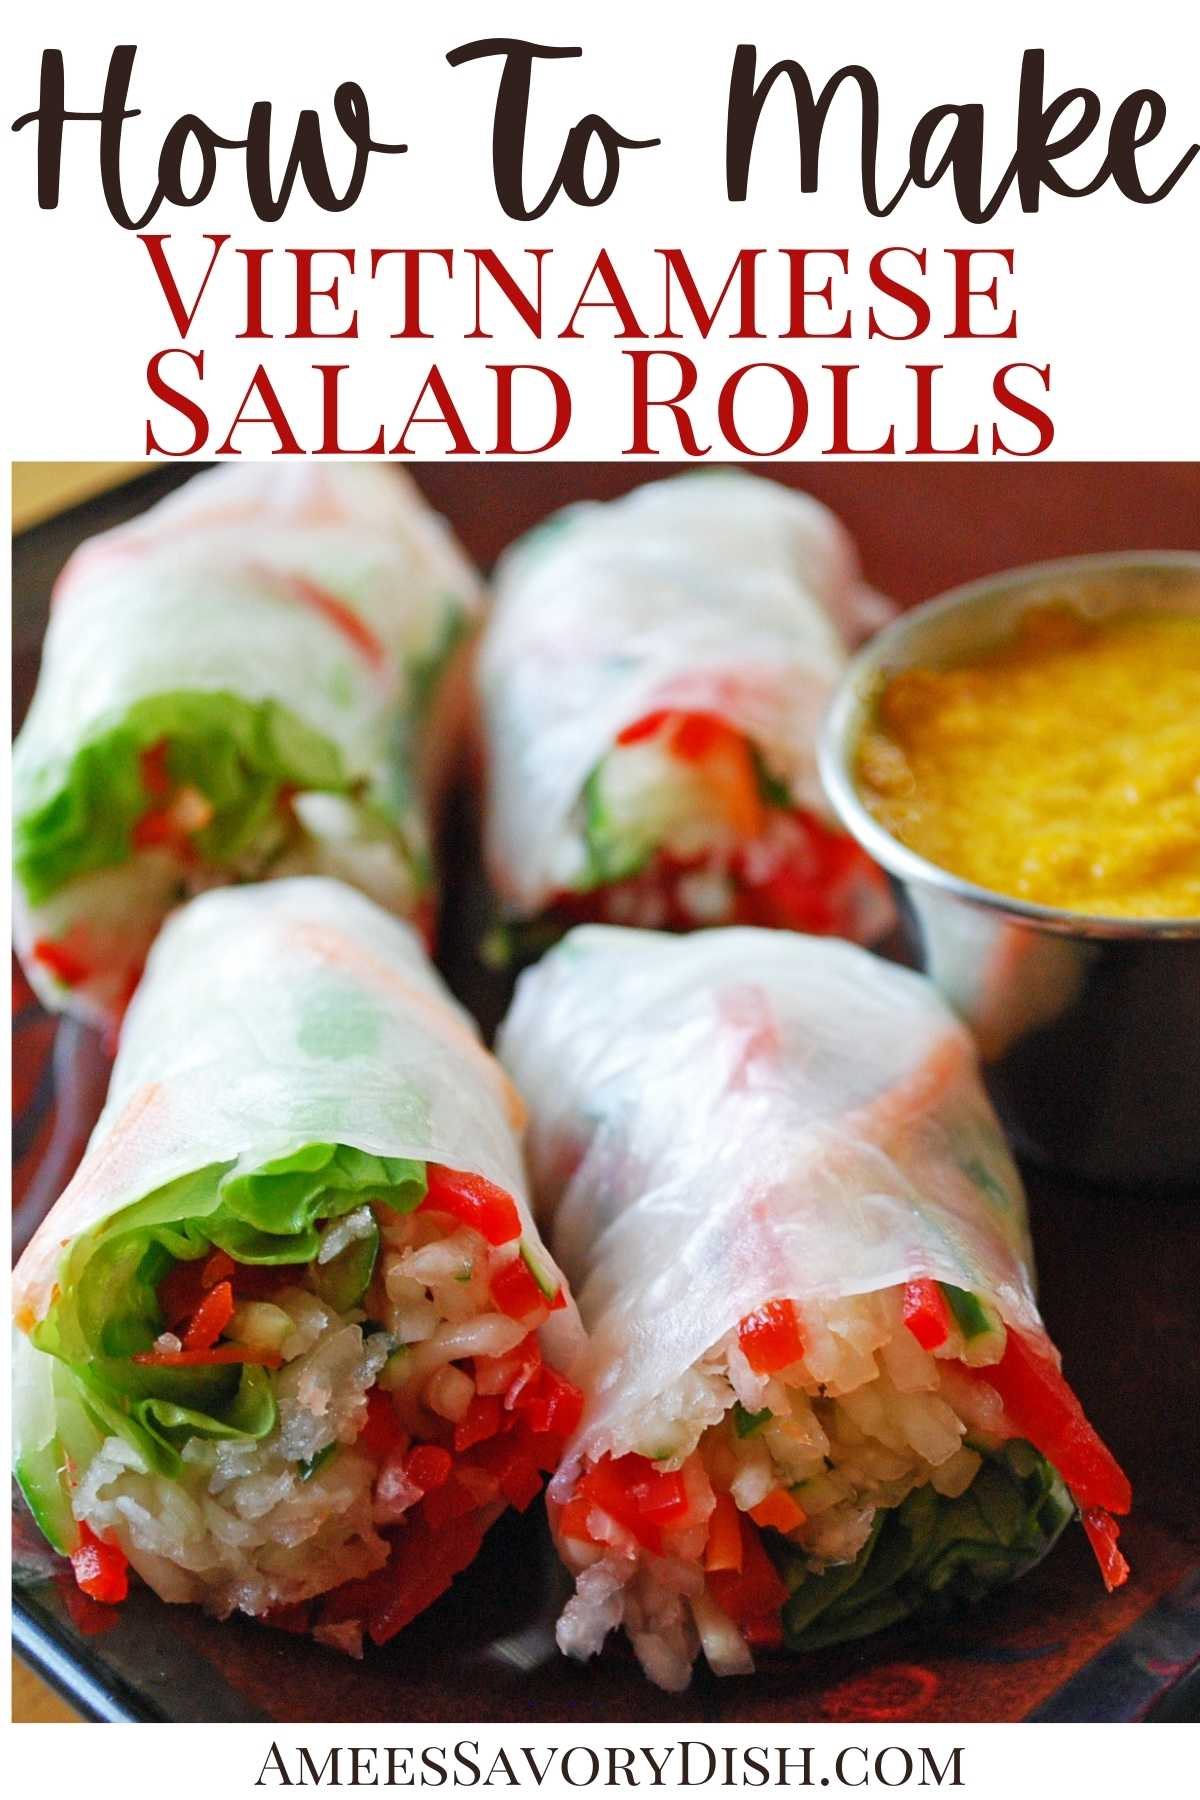 Vietnamese Salad Rolls are made with rice paper, fresh julienned vegetables, and a flavorful carrot ginger sauce for dipping.Easy, healthy, and SO delicious!! #vietnamesefood #saladrolls #vietnamesesaladrolls #ricepaperrolls #asianrecipes #easyasian via @Ameessavorydish